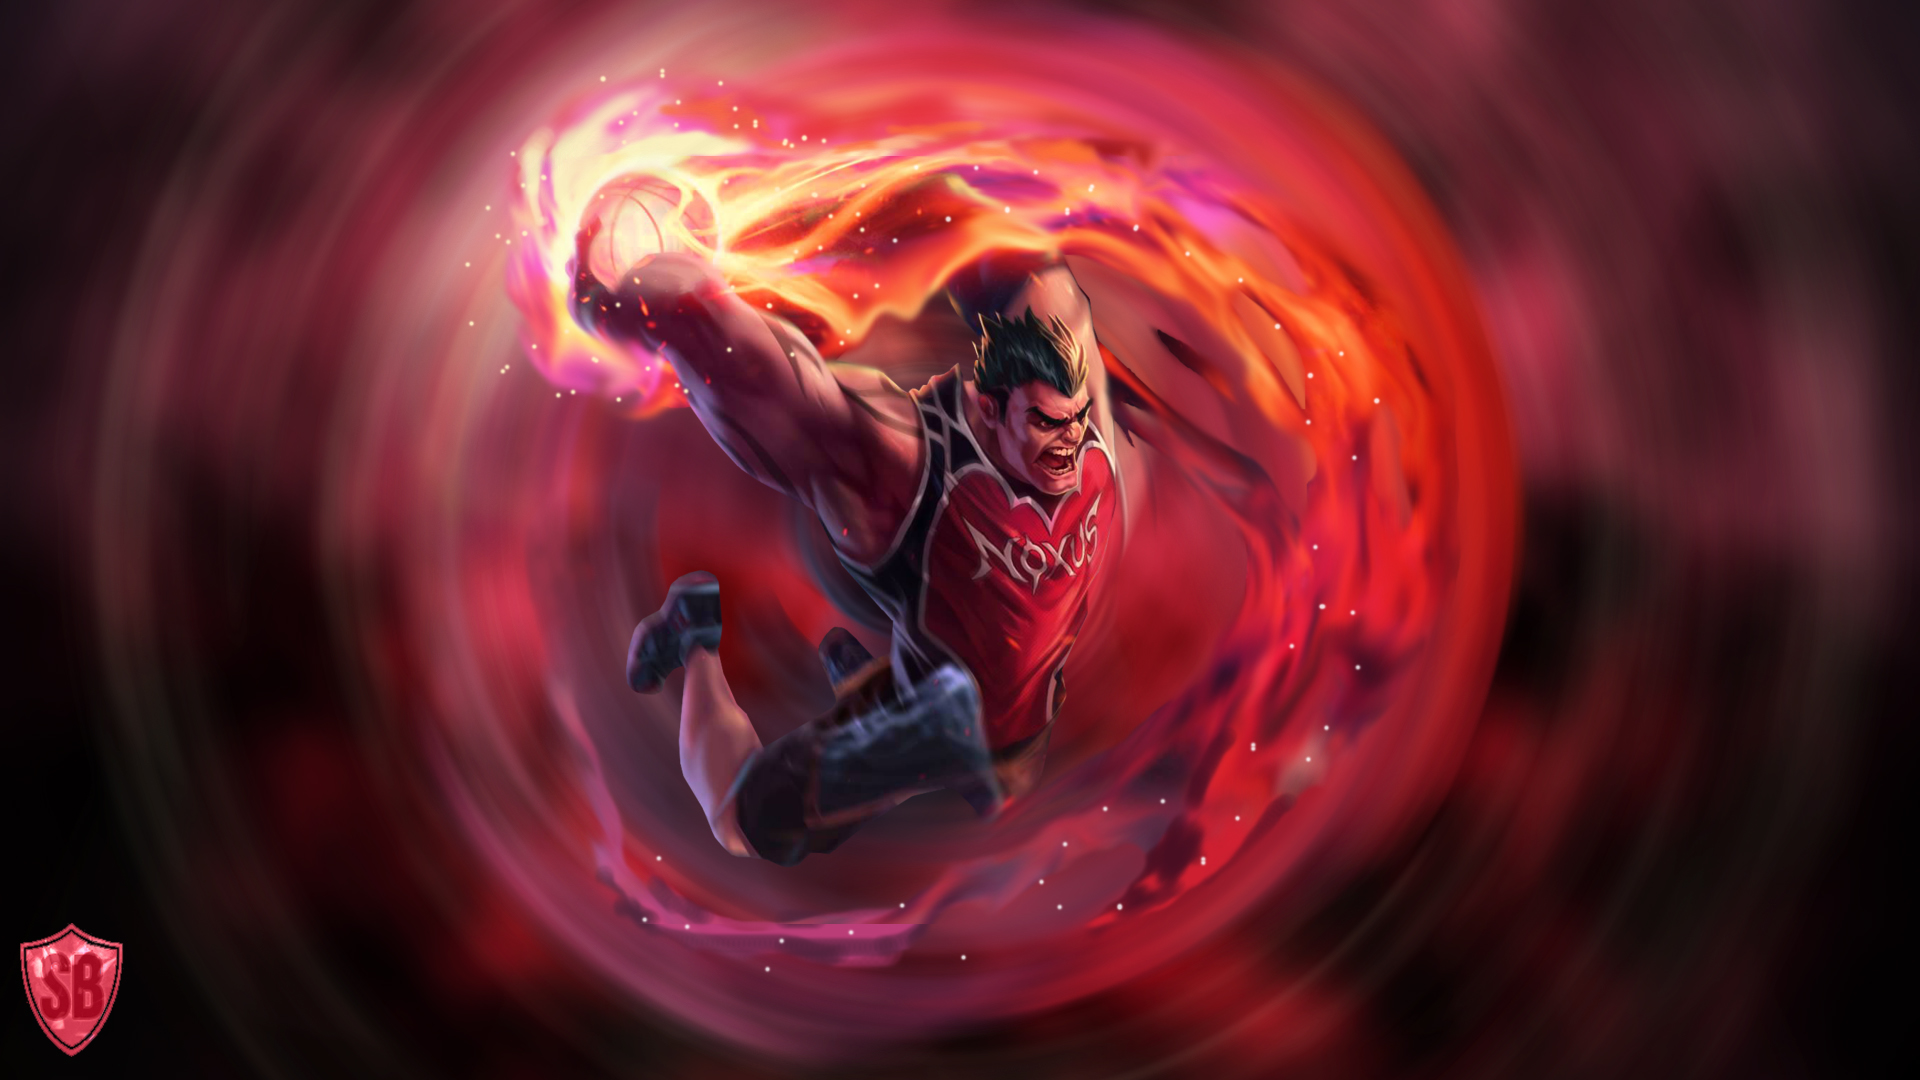 Dunkmaster Darius wallpaper